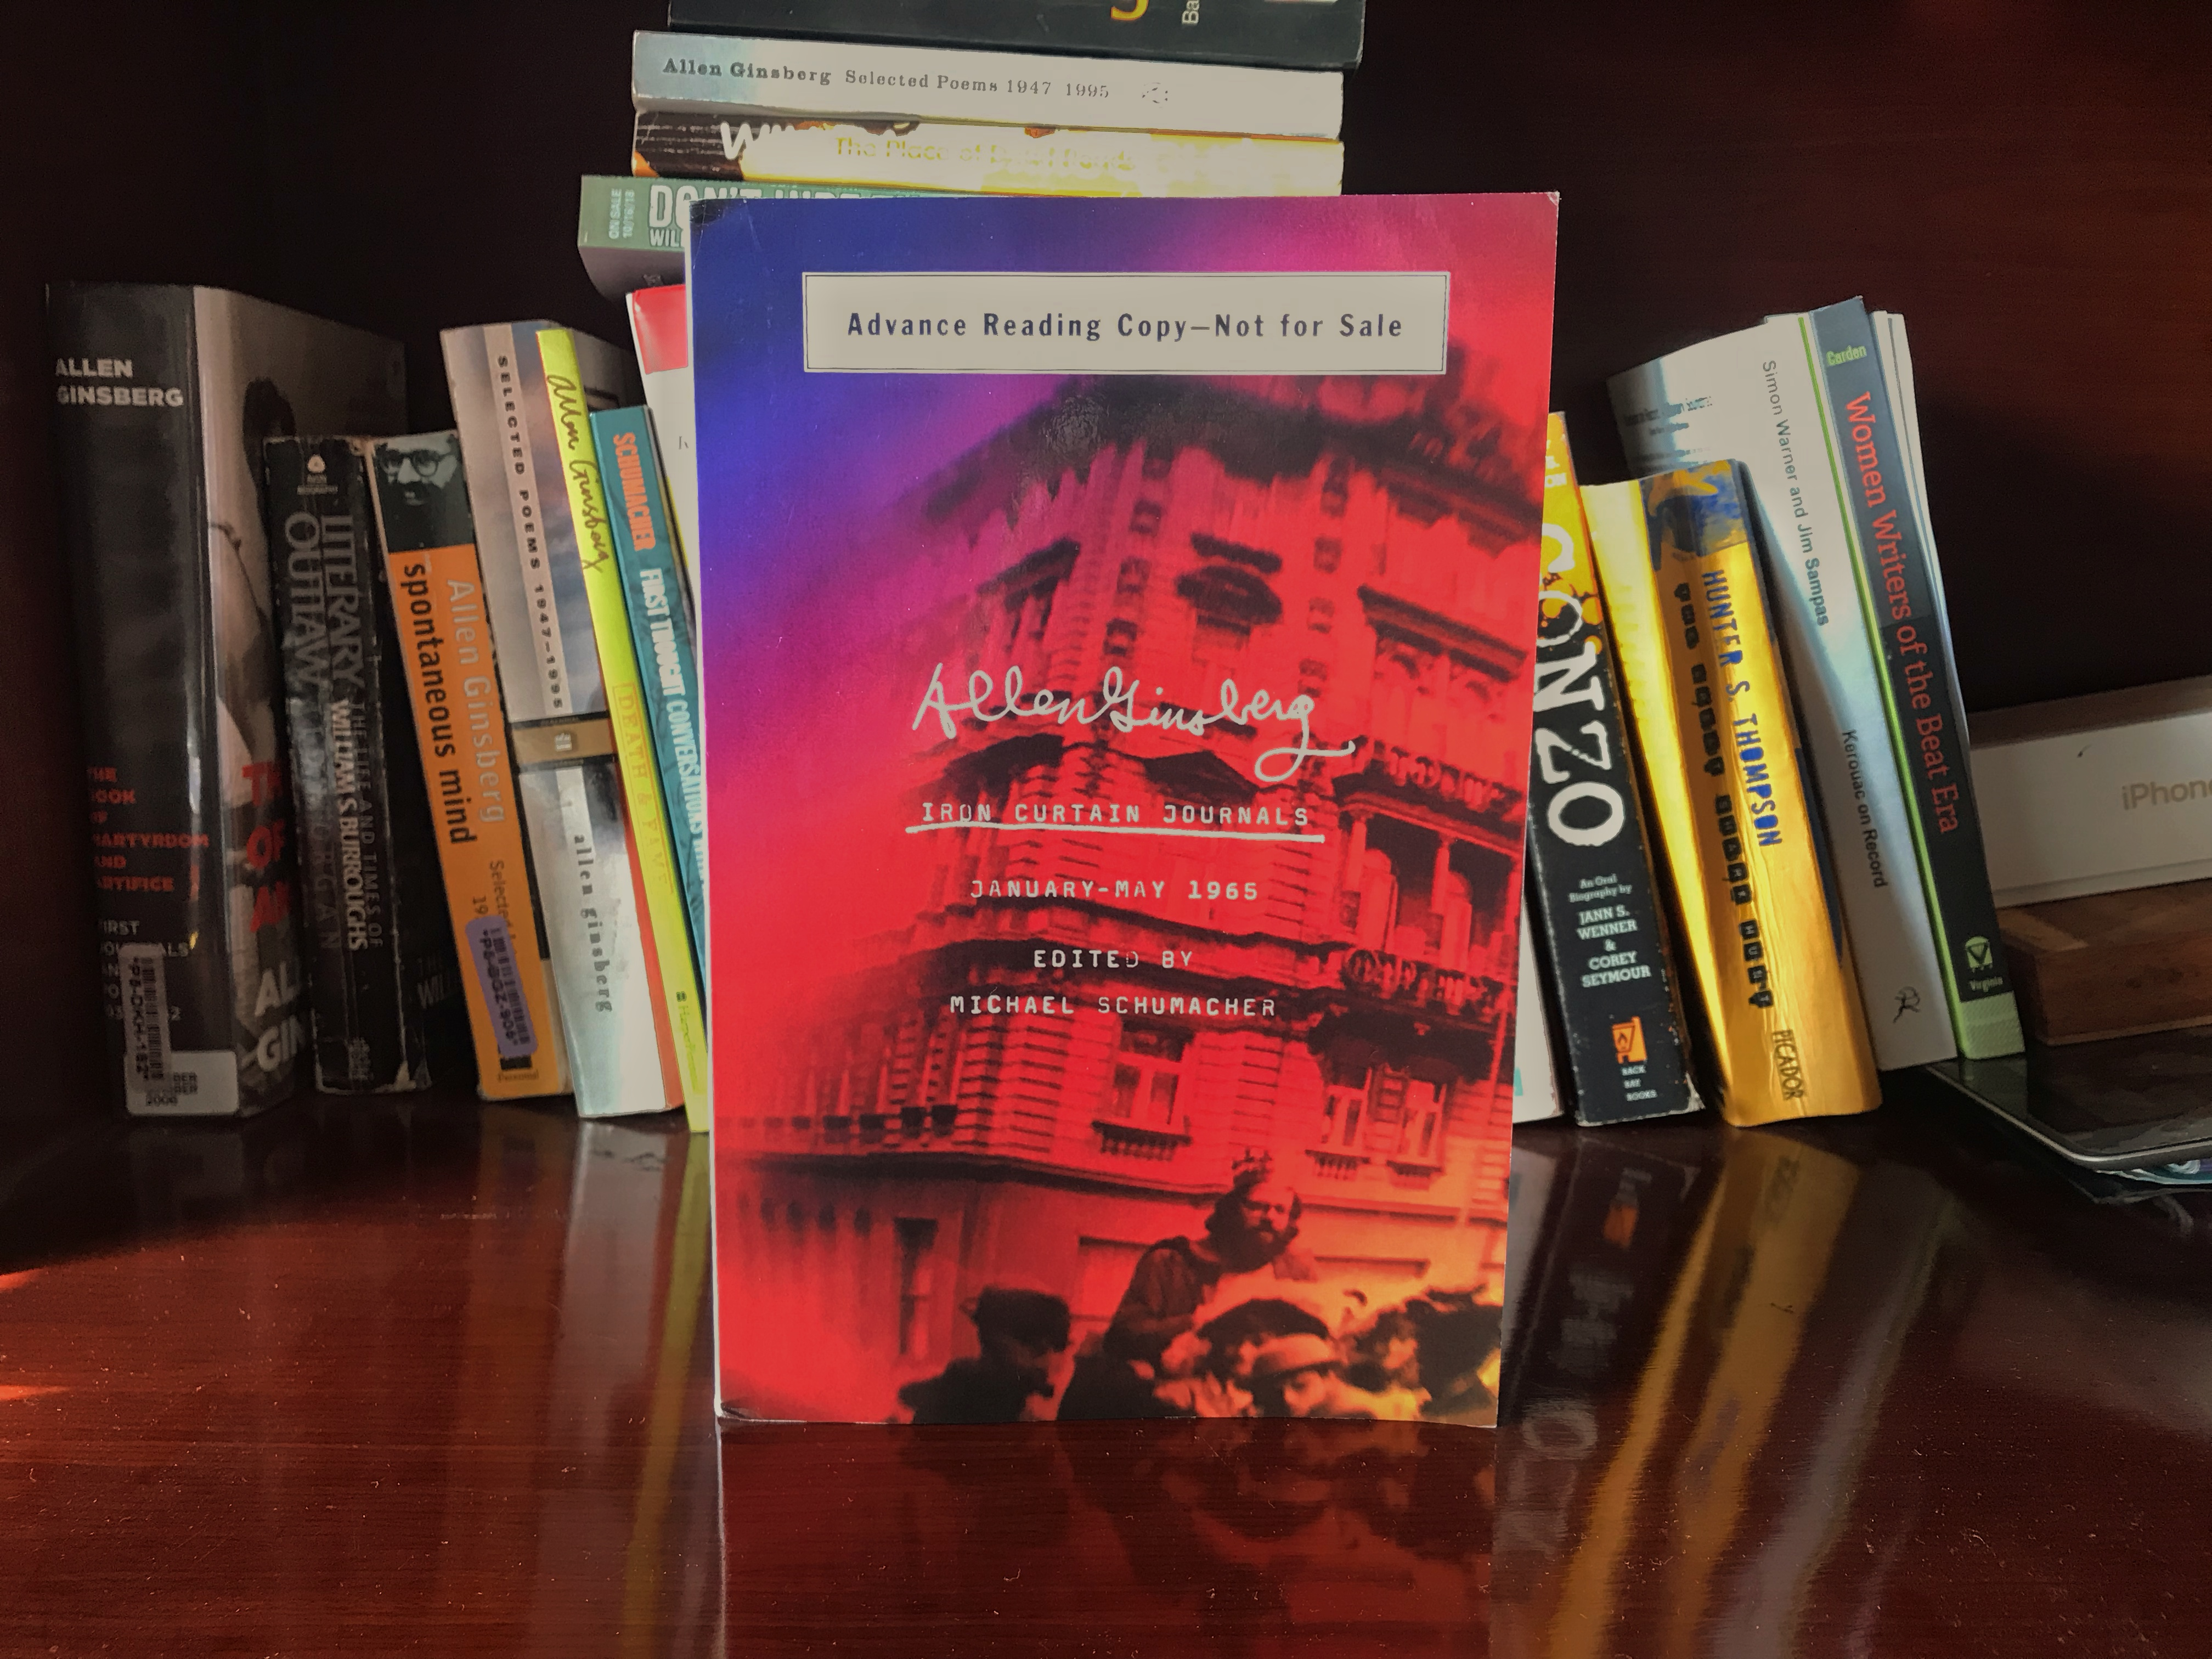 Ginsberg Goes Behind Enemy Lines: A Review of Iron Curtain Journals